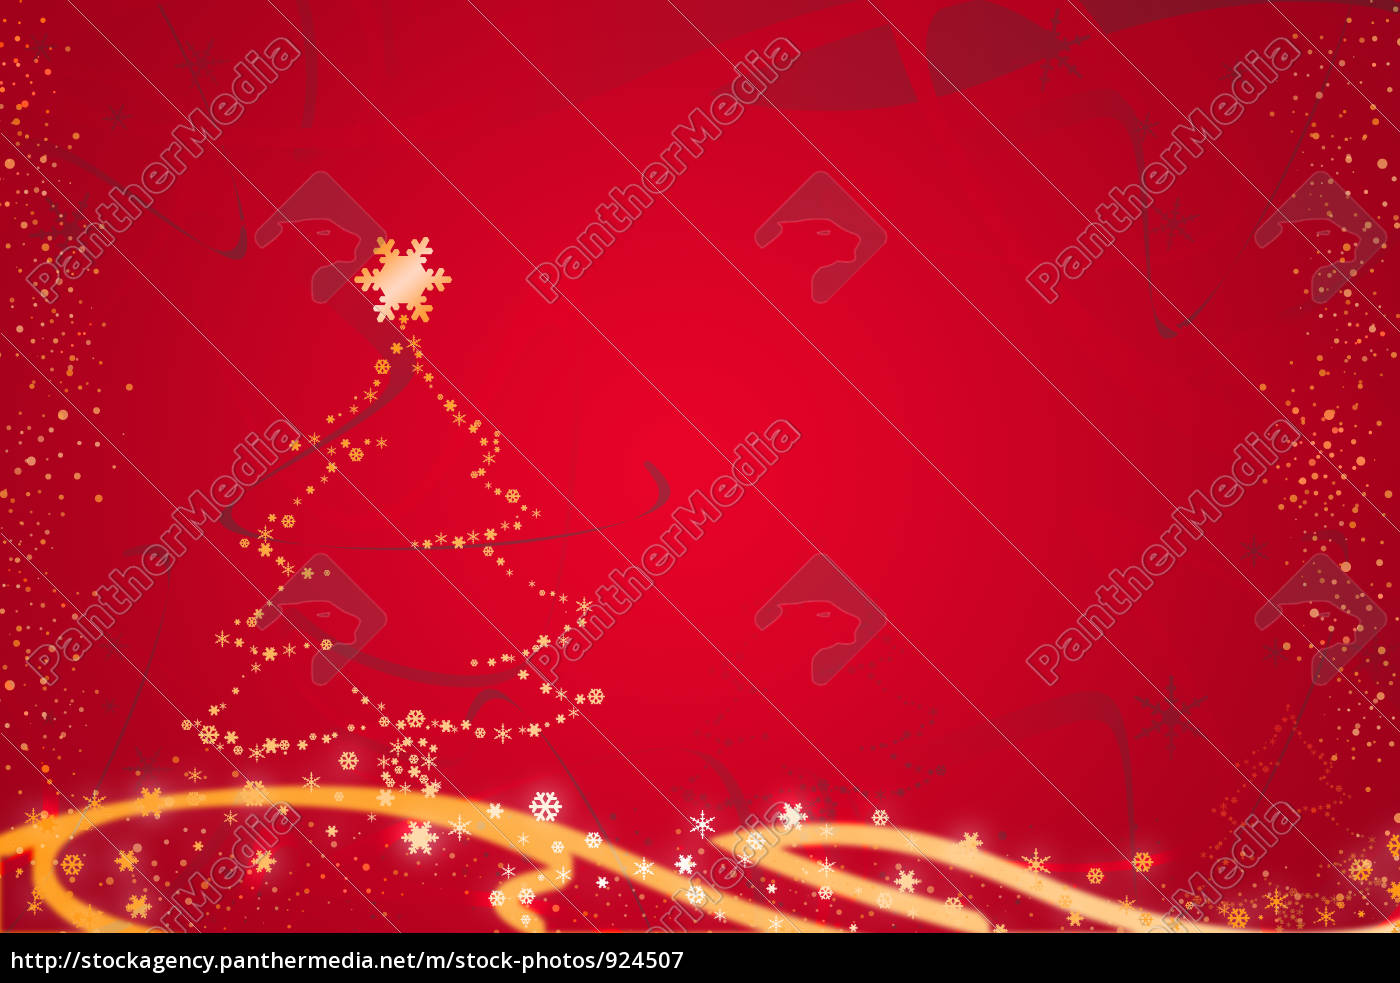 red, illustration, for, christmas - 924507